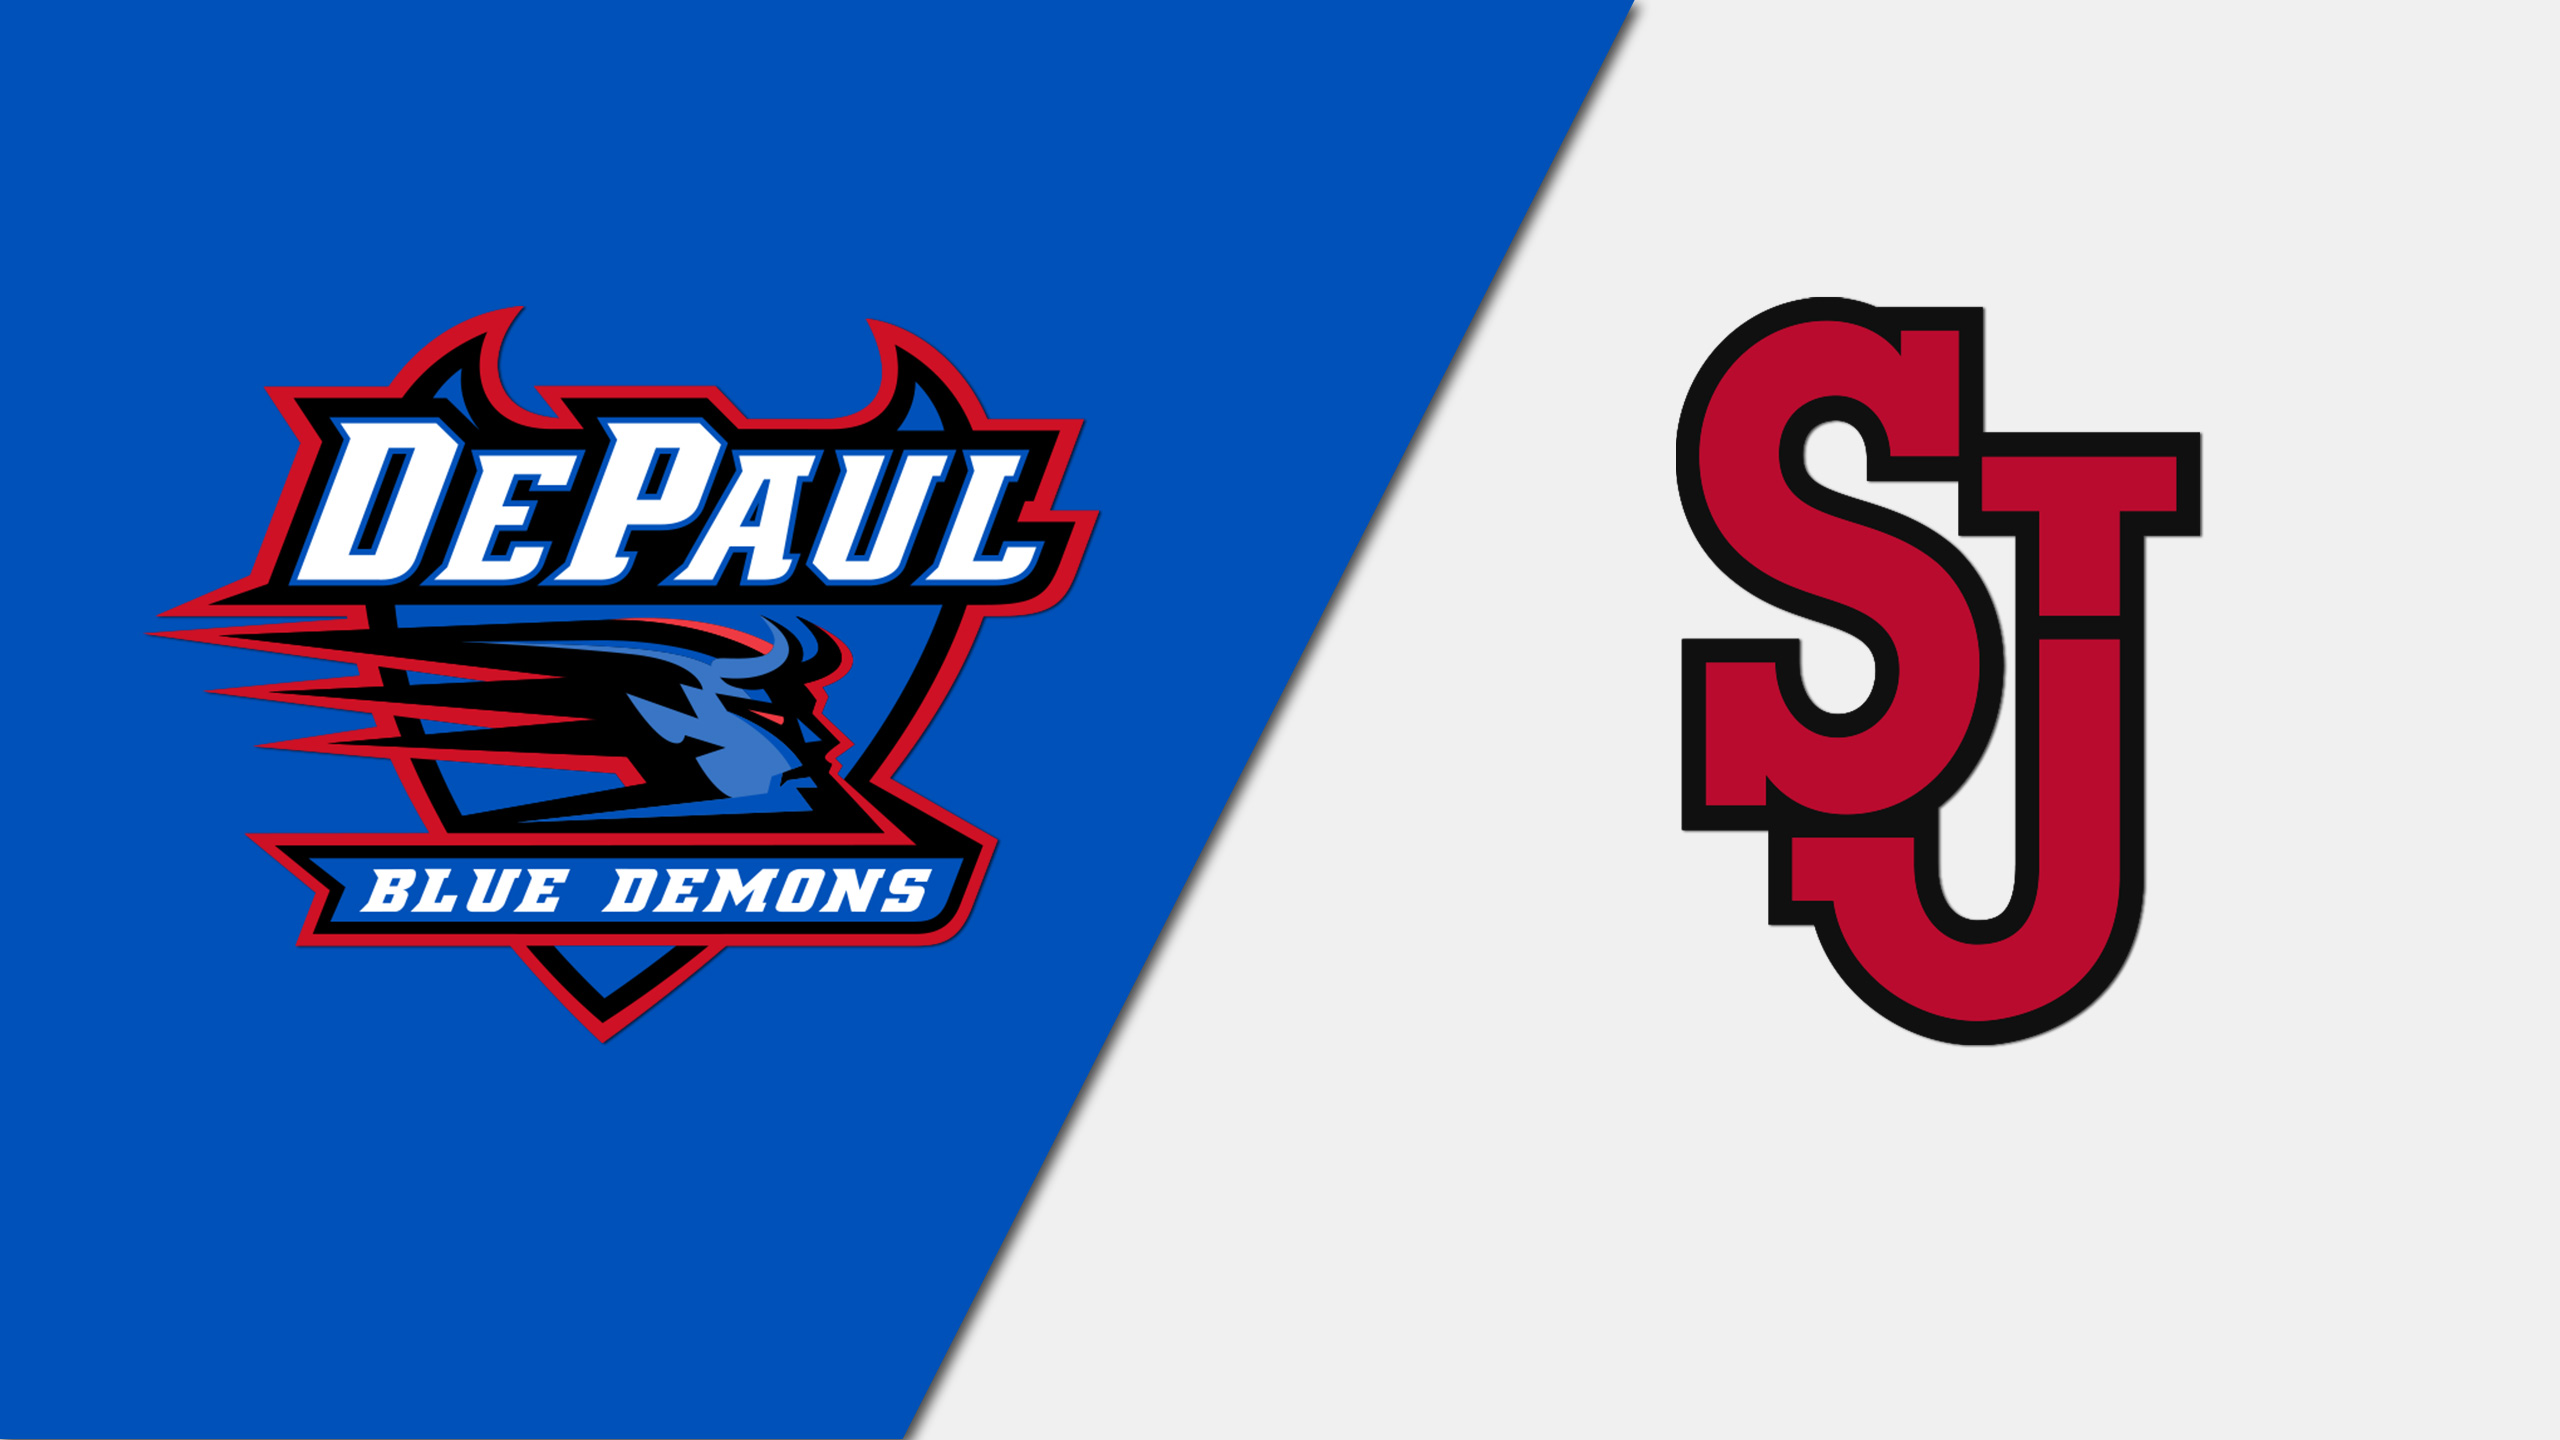 DePaul vs. St. John's (Softball)